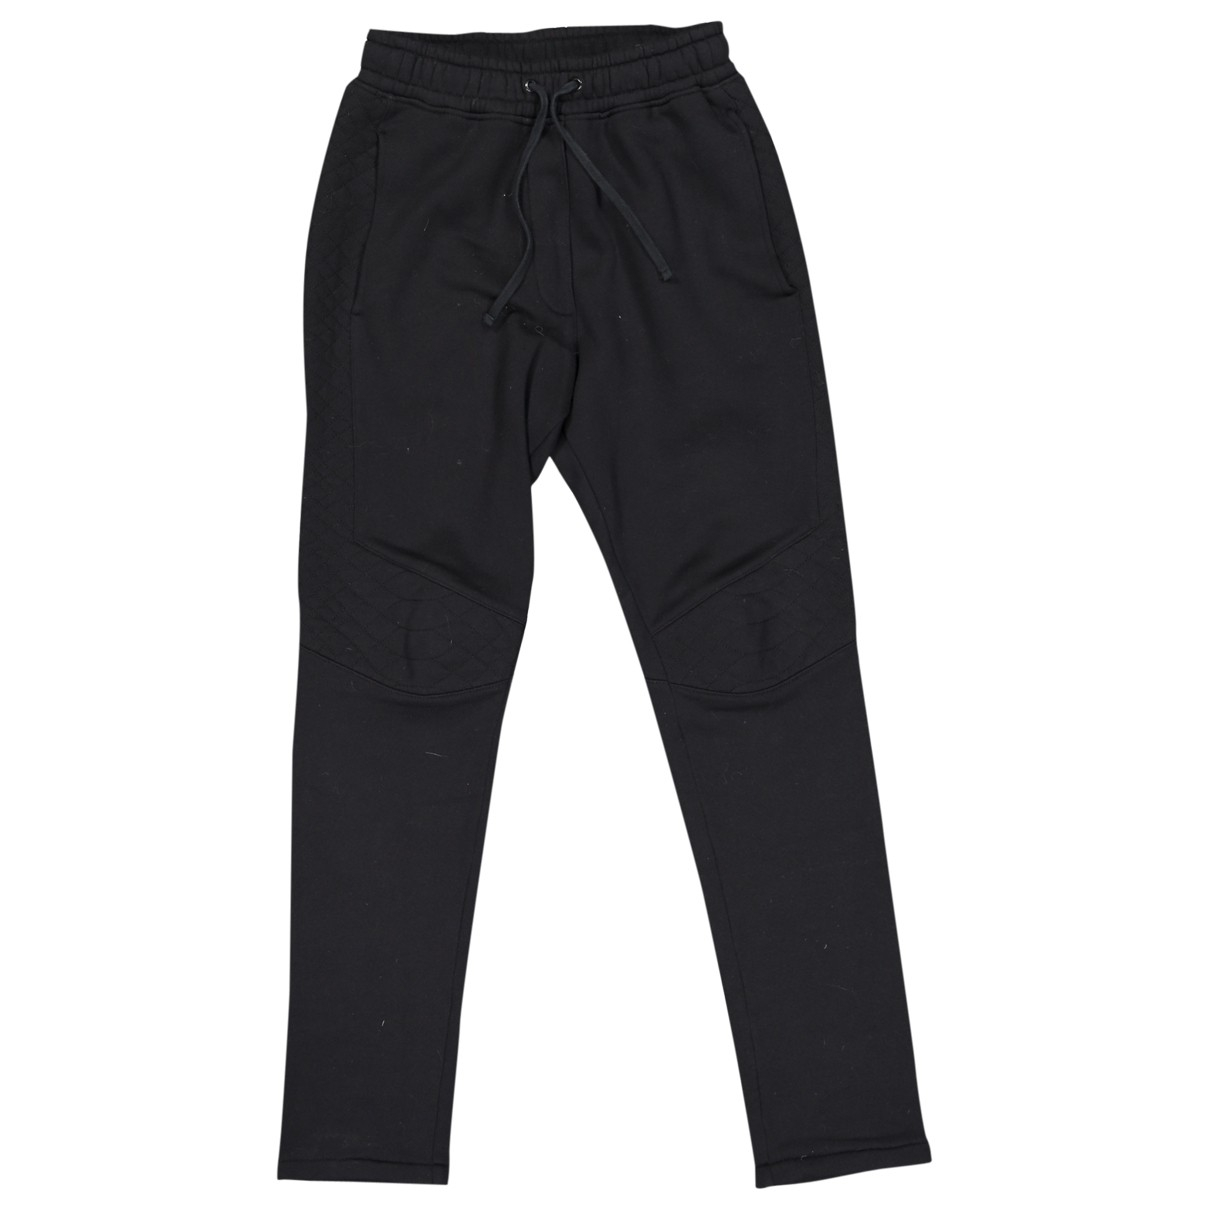 Balmain \N Black Cotton Trousers for Men S International